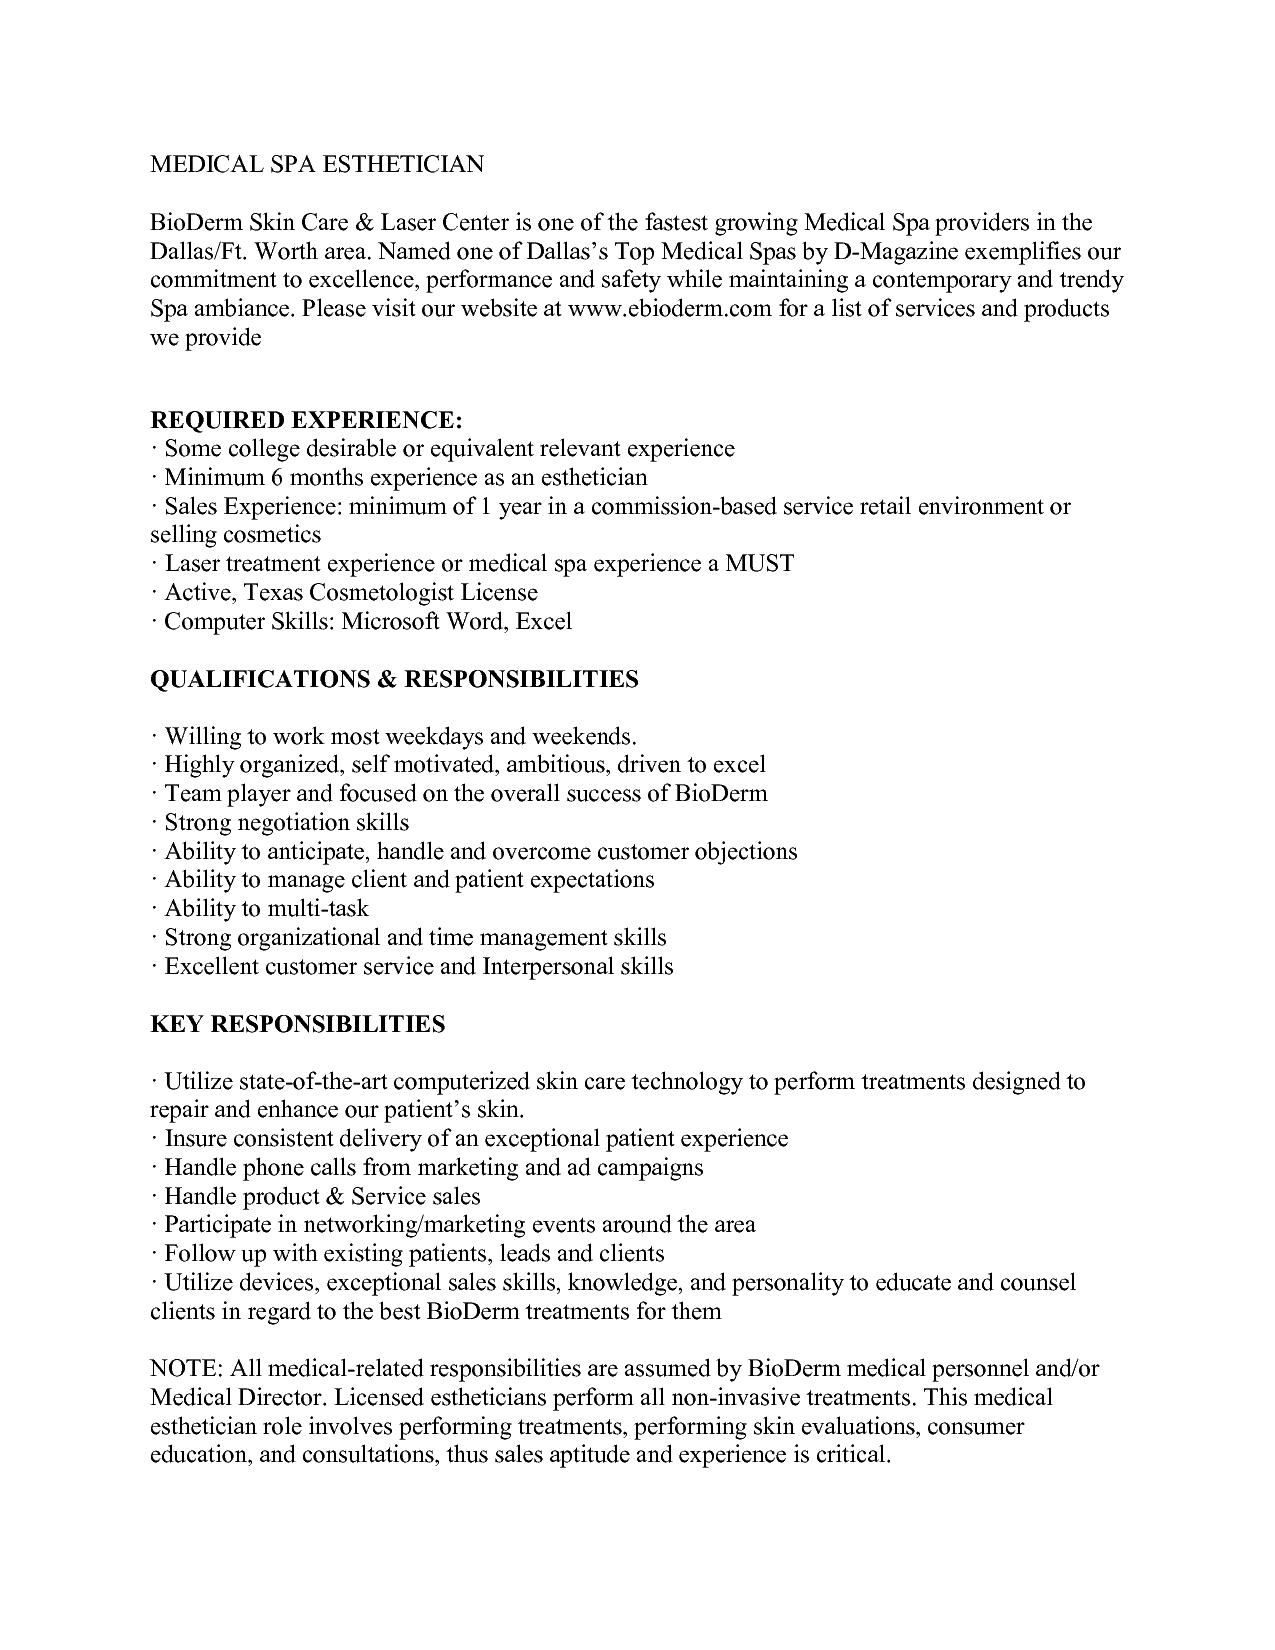 aesthetician resume master esthetician resume sample does a – Medical Esthetician Cover Letter